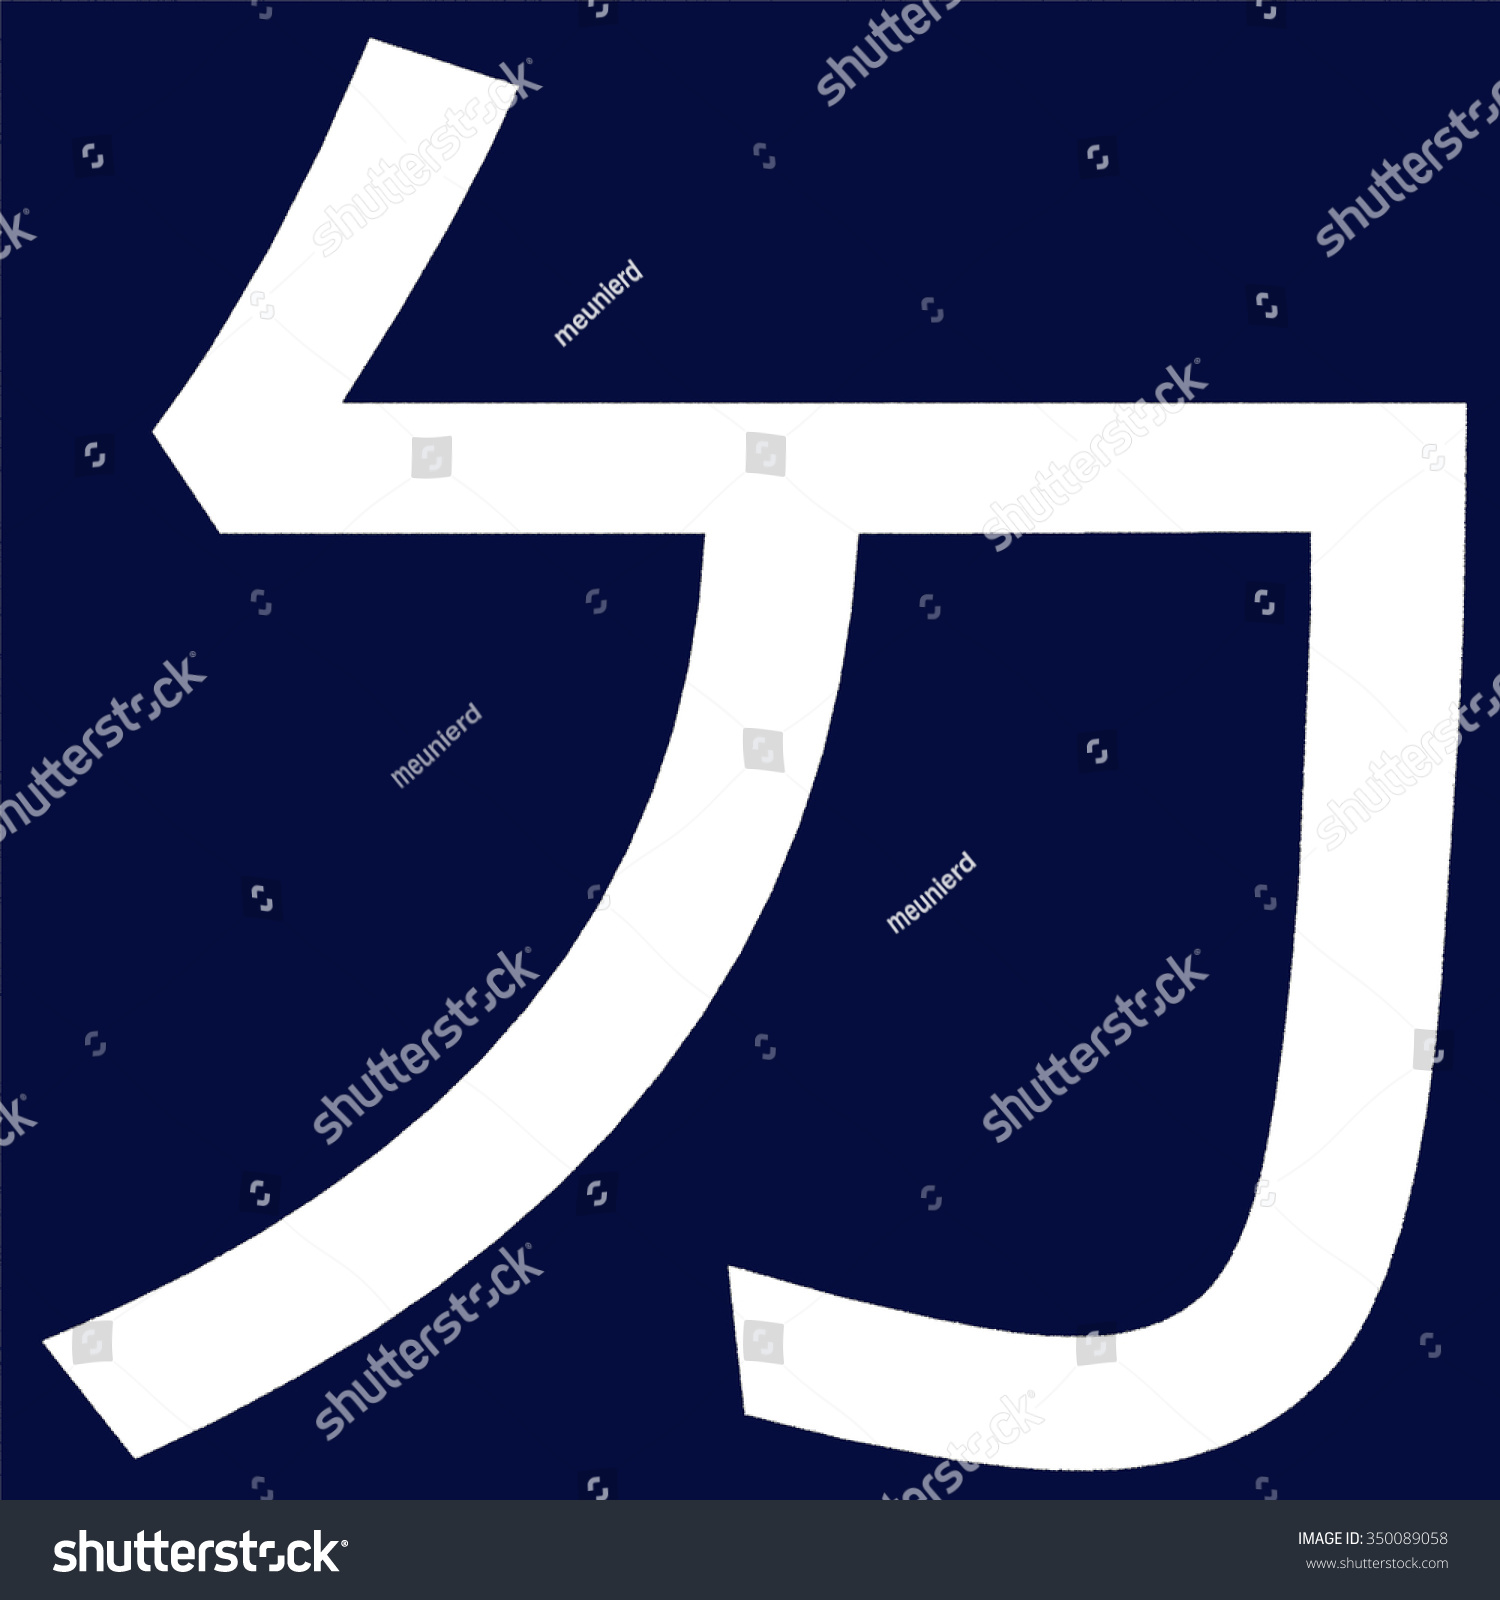 D chinese alphabets adapted write down stock illustration d in chinese alphabets adapted to write down the chinese language however the standard biocorpaavc Gallery